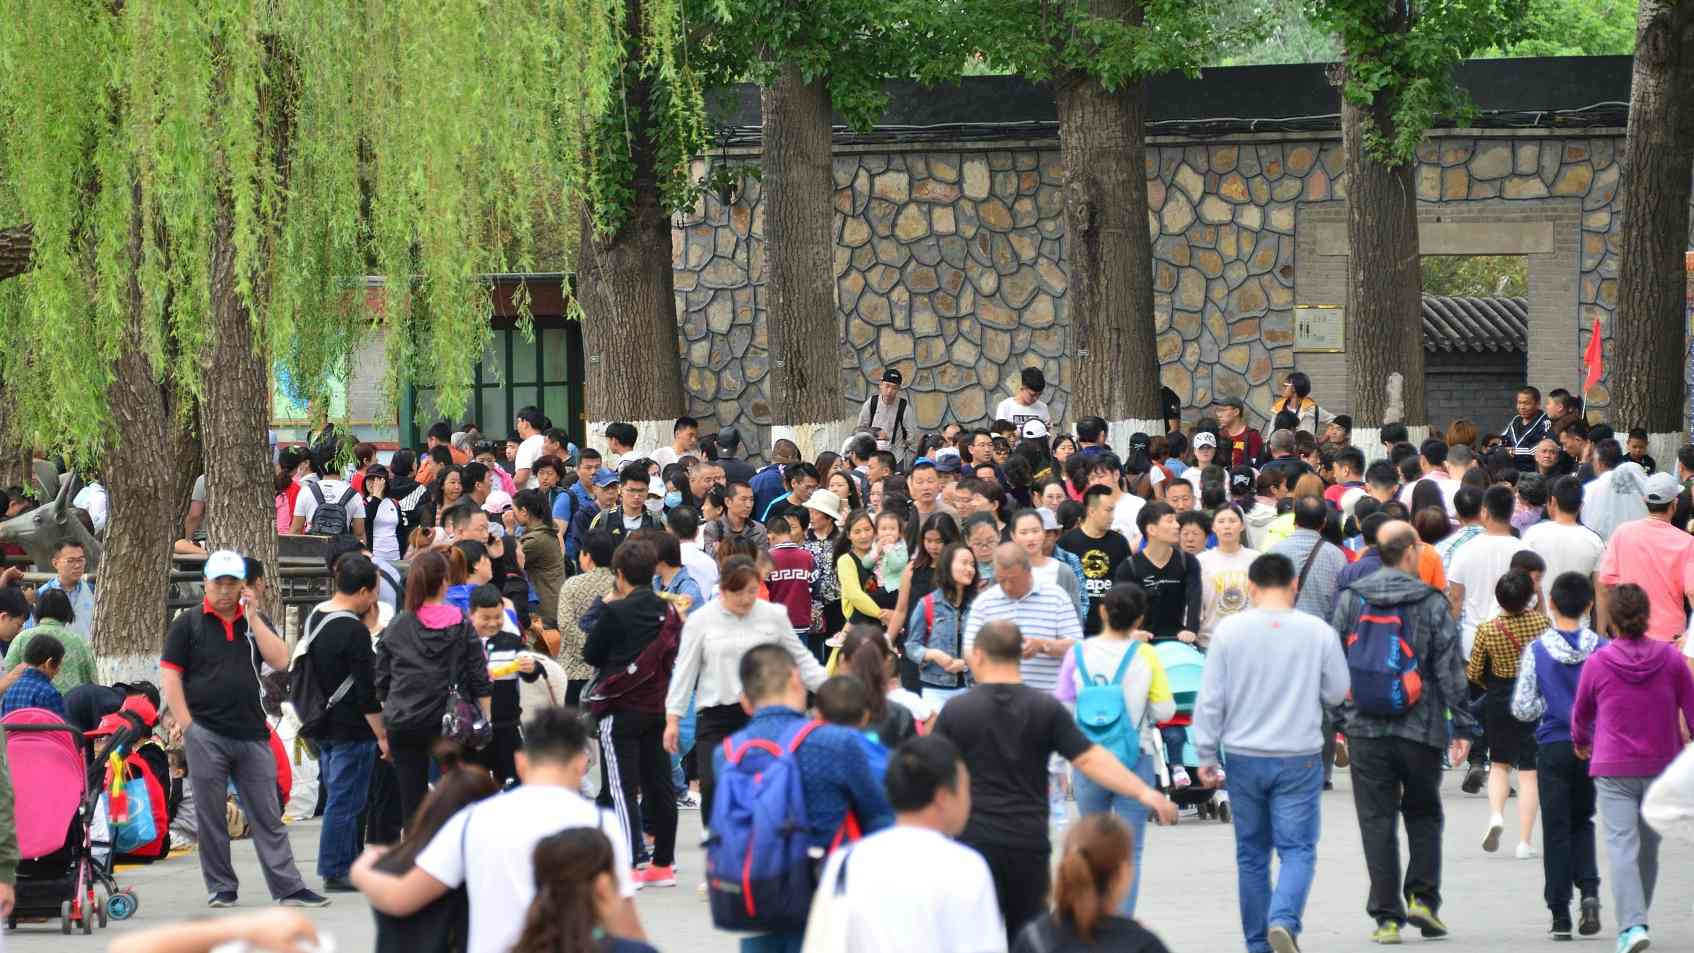 Domestic tourist visits to exceed 600 million during China's National Day holiday